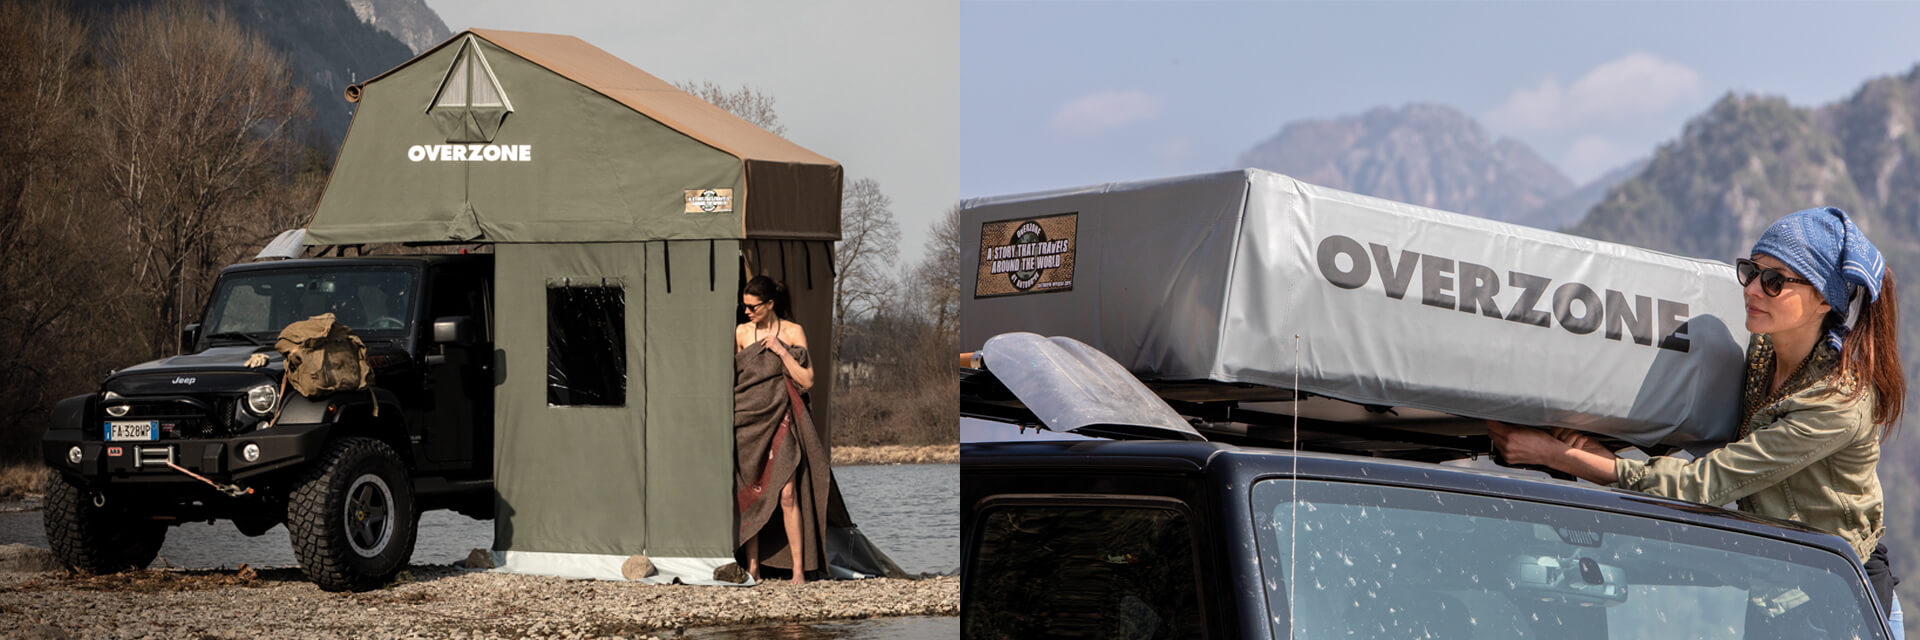 Overzone Roof Top Tents by Autohome